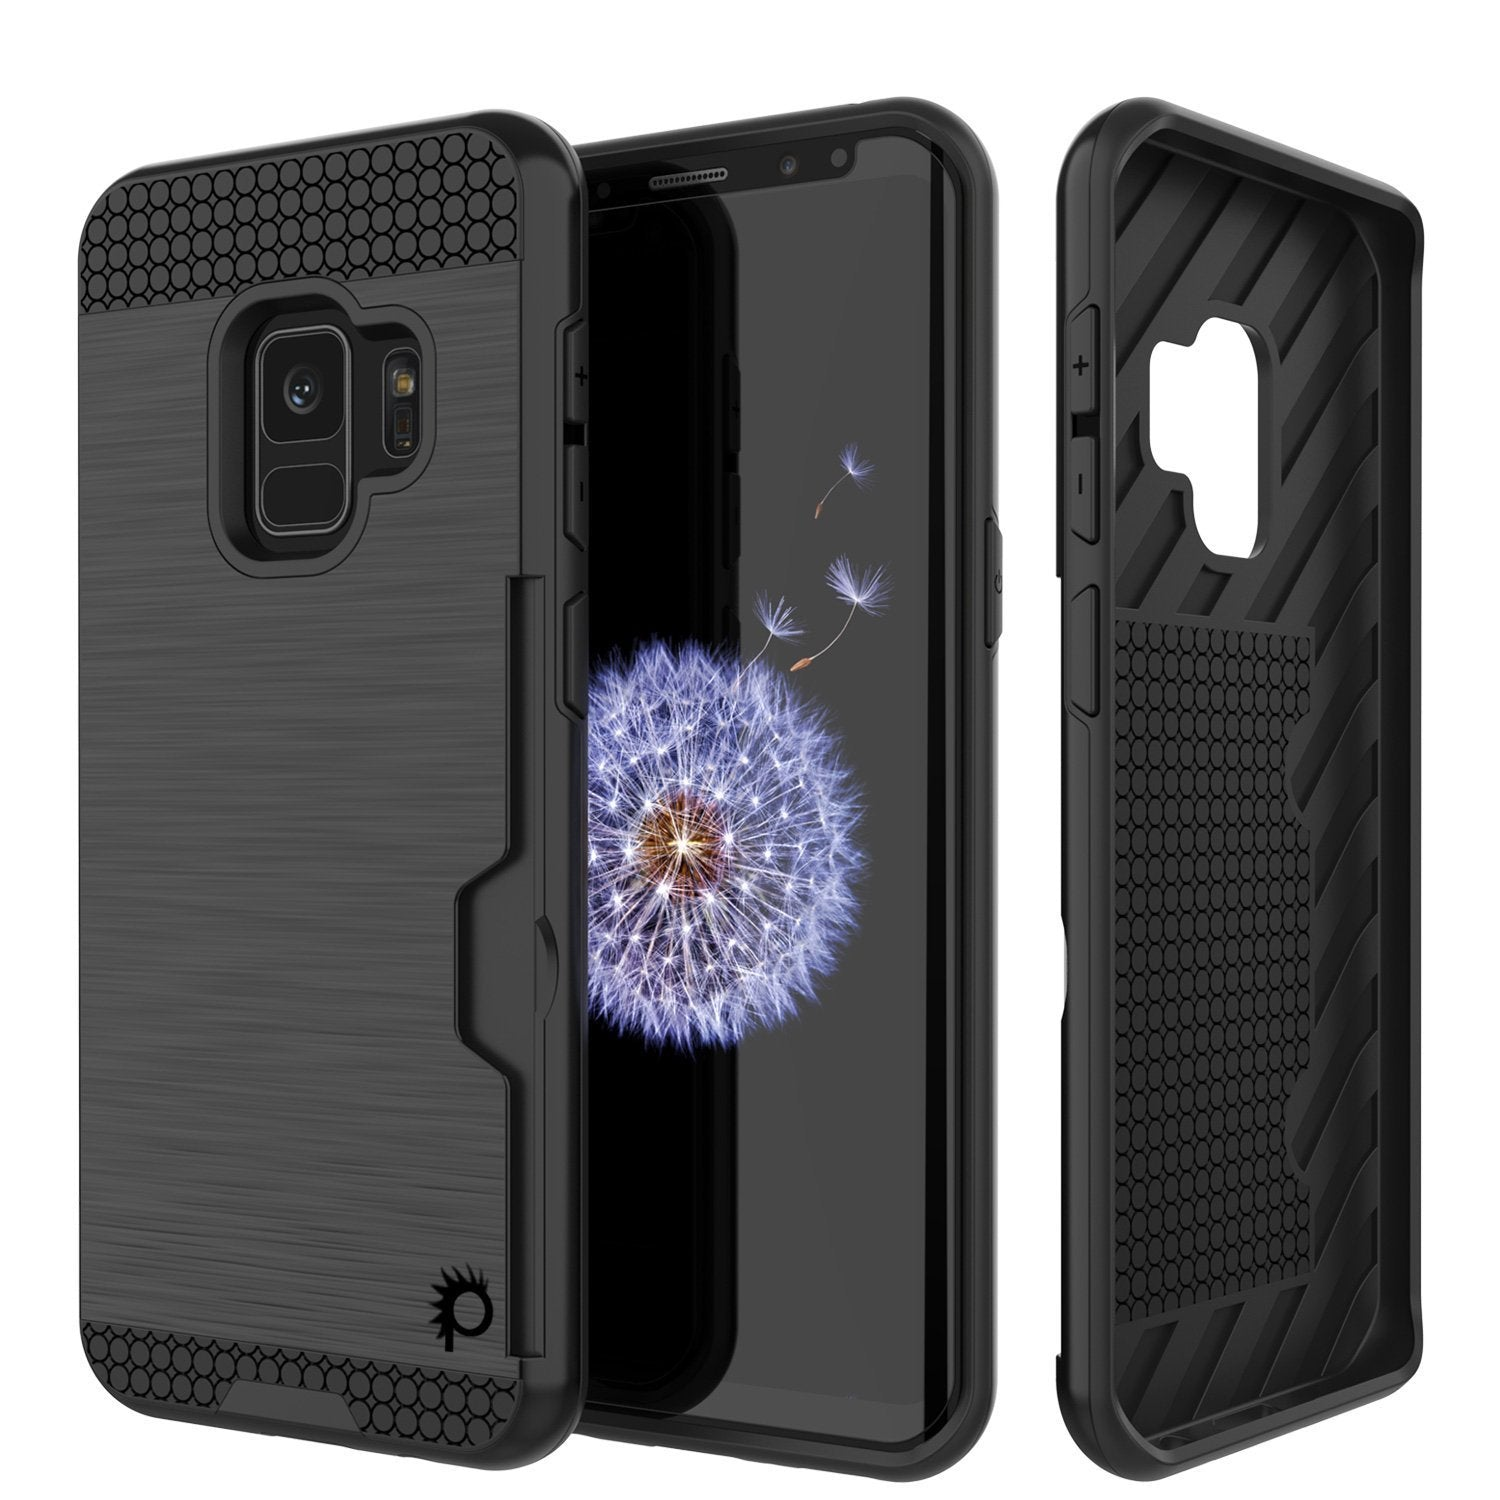 Galaxy S9 Dual-Layer, Anti-Shock, SLOT Series Slim-Fit Case [Black]